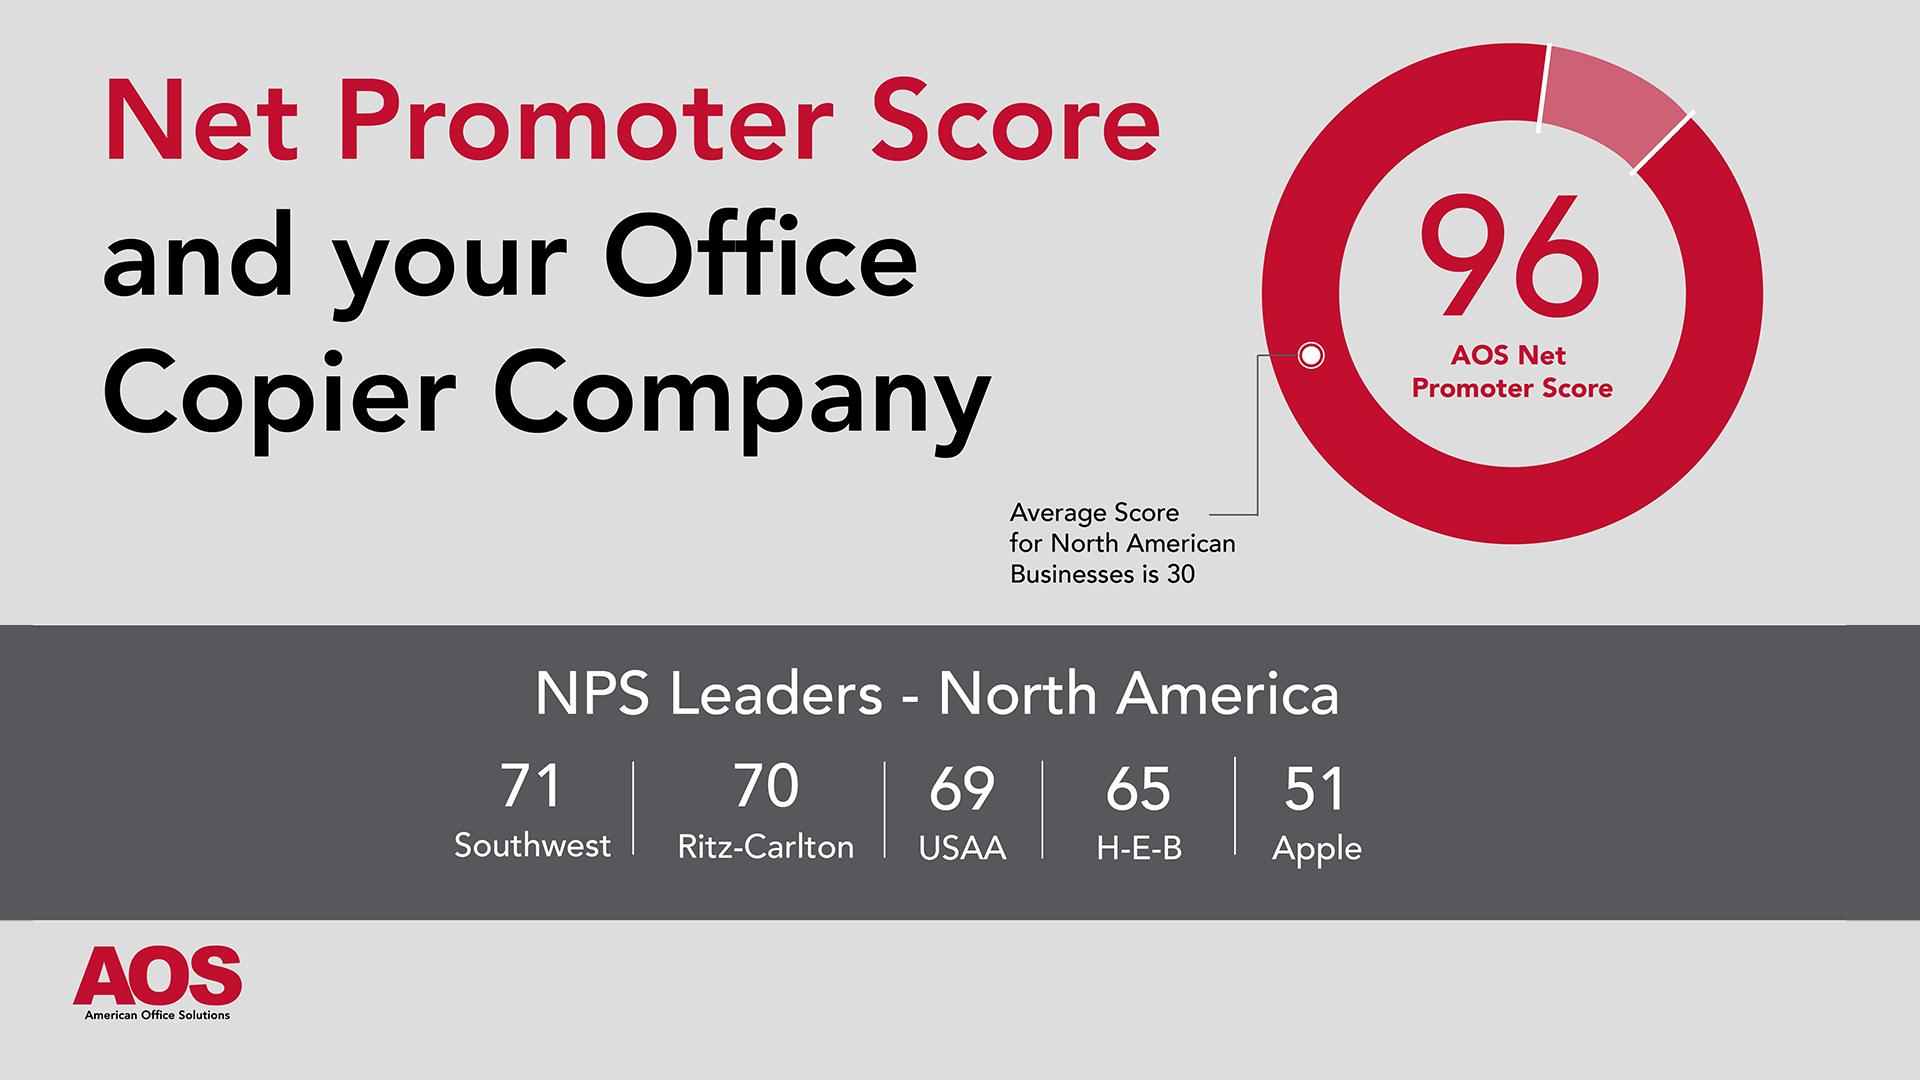 Net Promoter Score and Your Office Copier Company